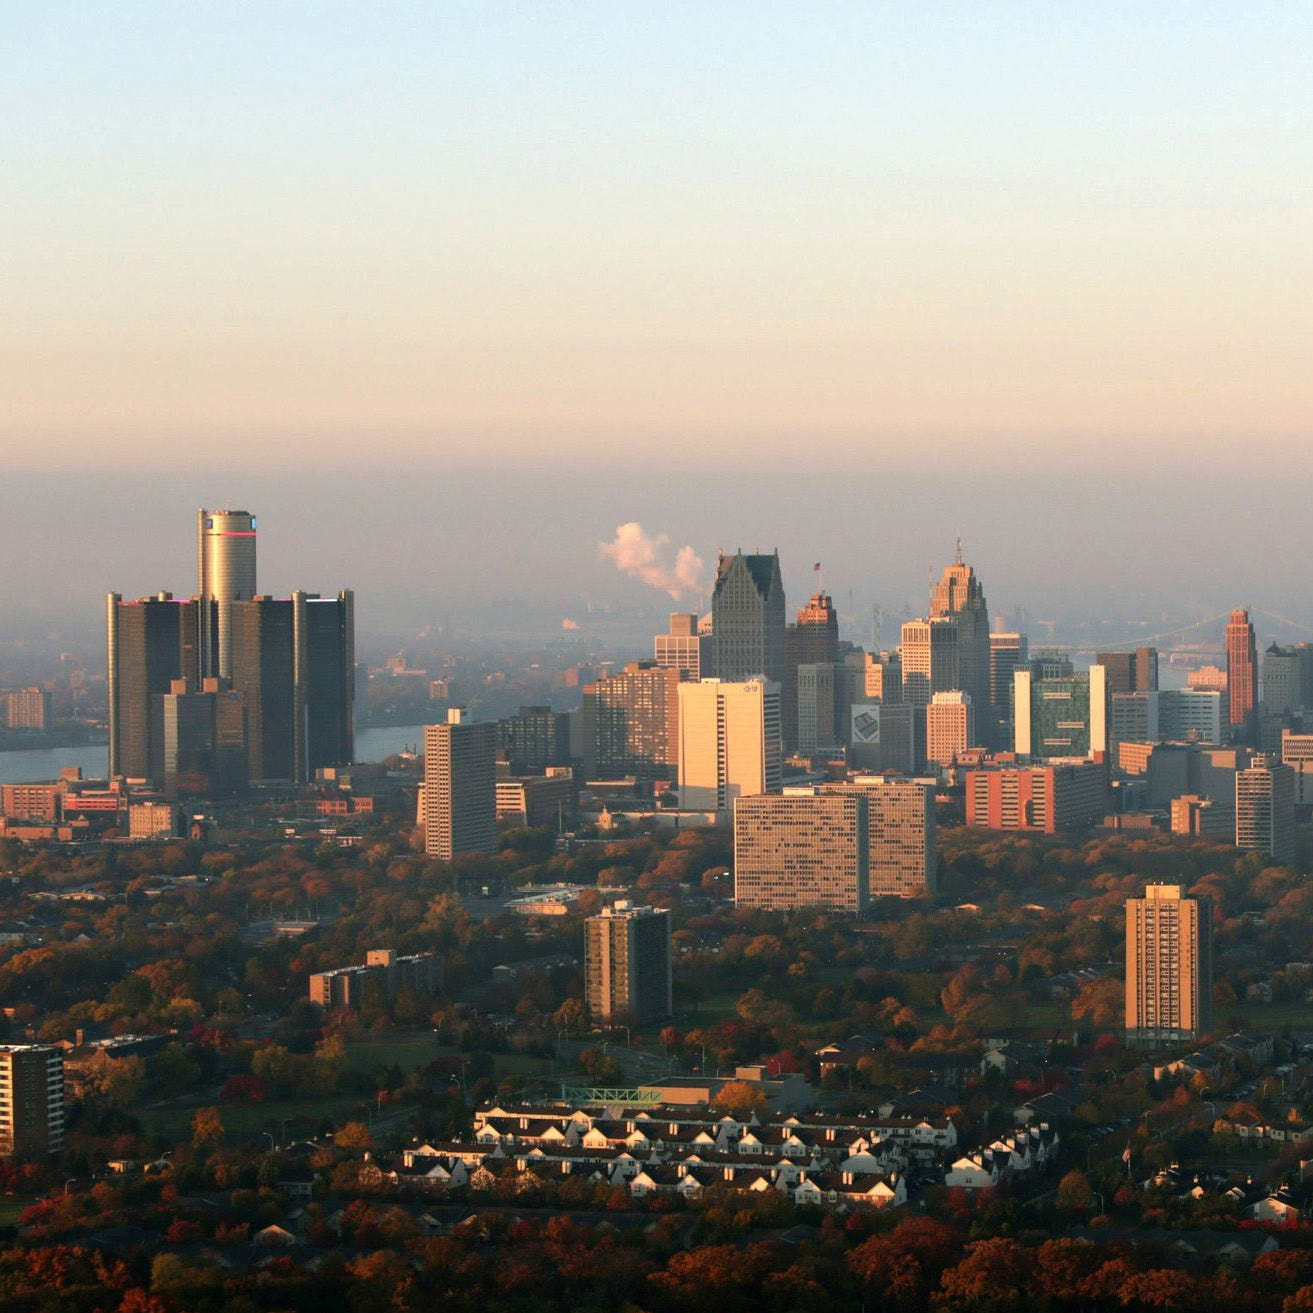 Even 5 years later, retirees feel the effects of Detroit's bankruptcy